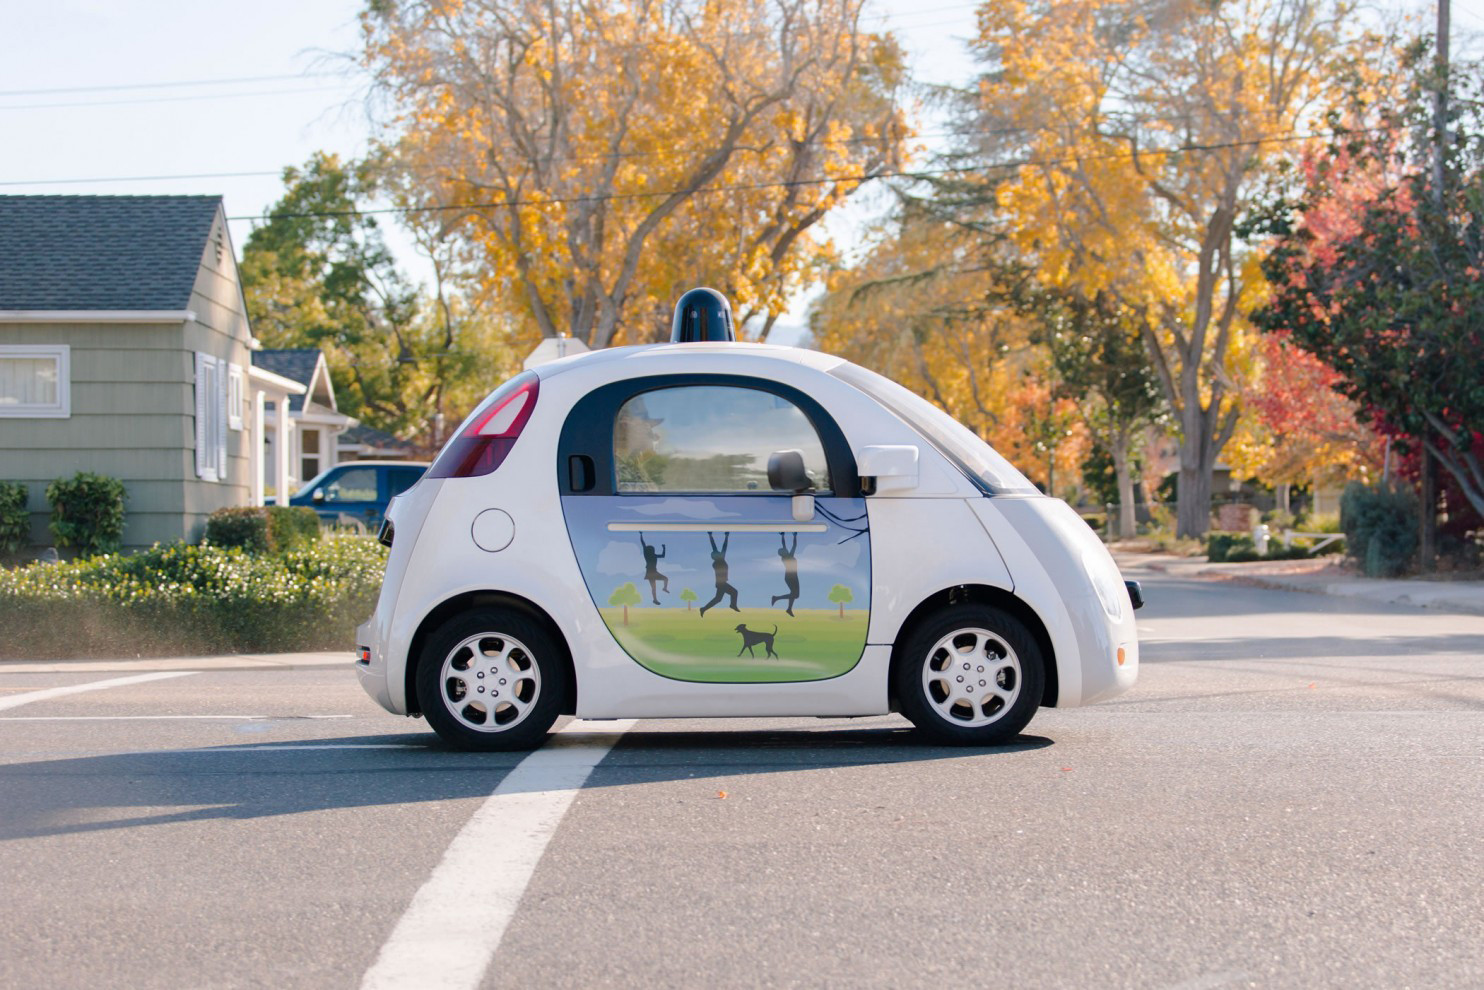 Toot toot: The politely honking driverless car is here - Chicago Tribune